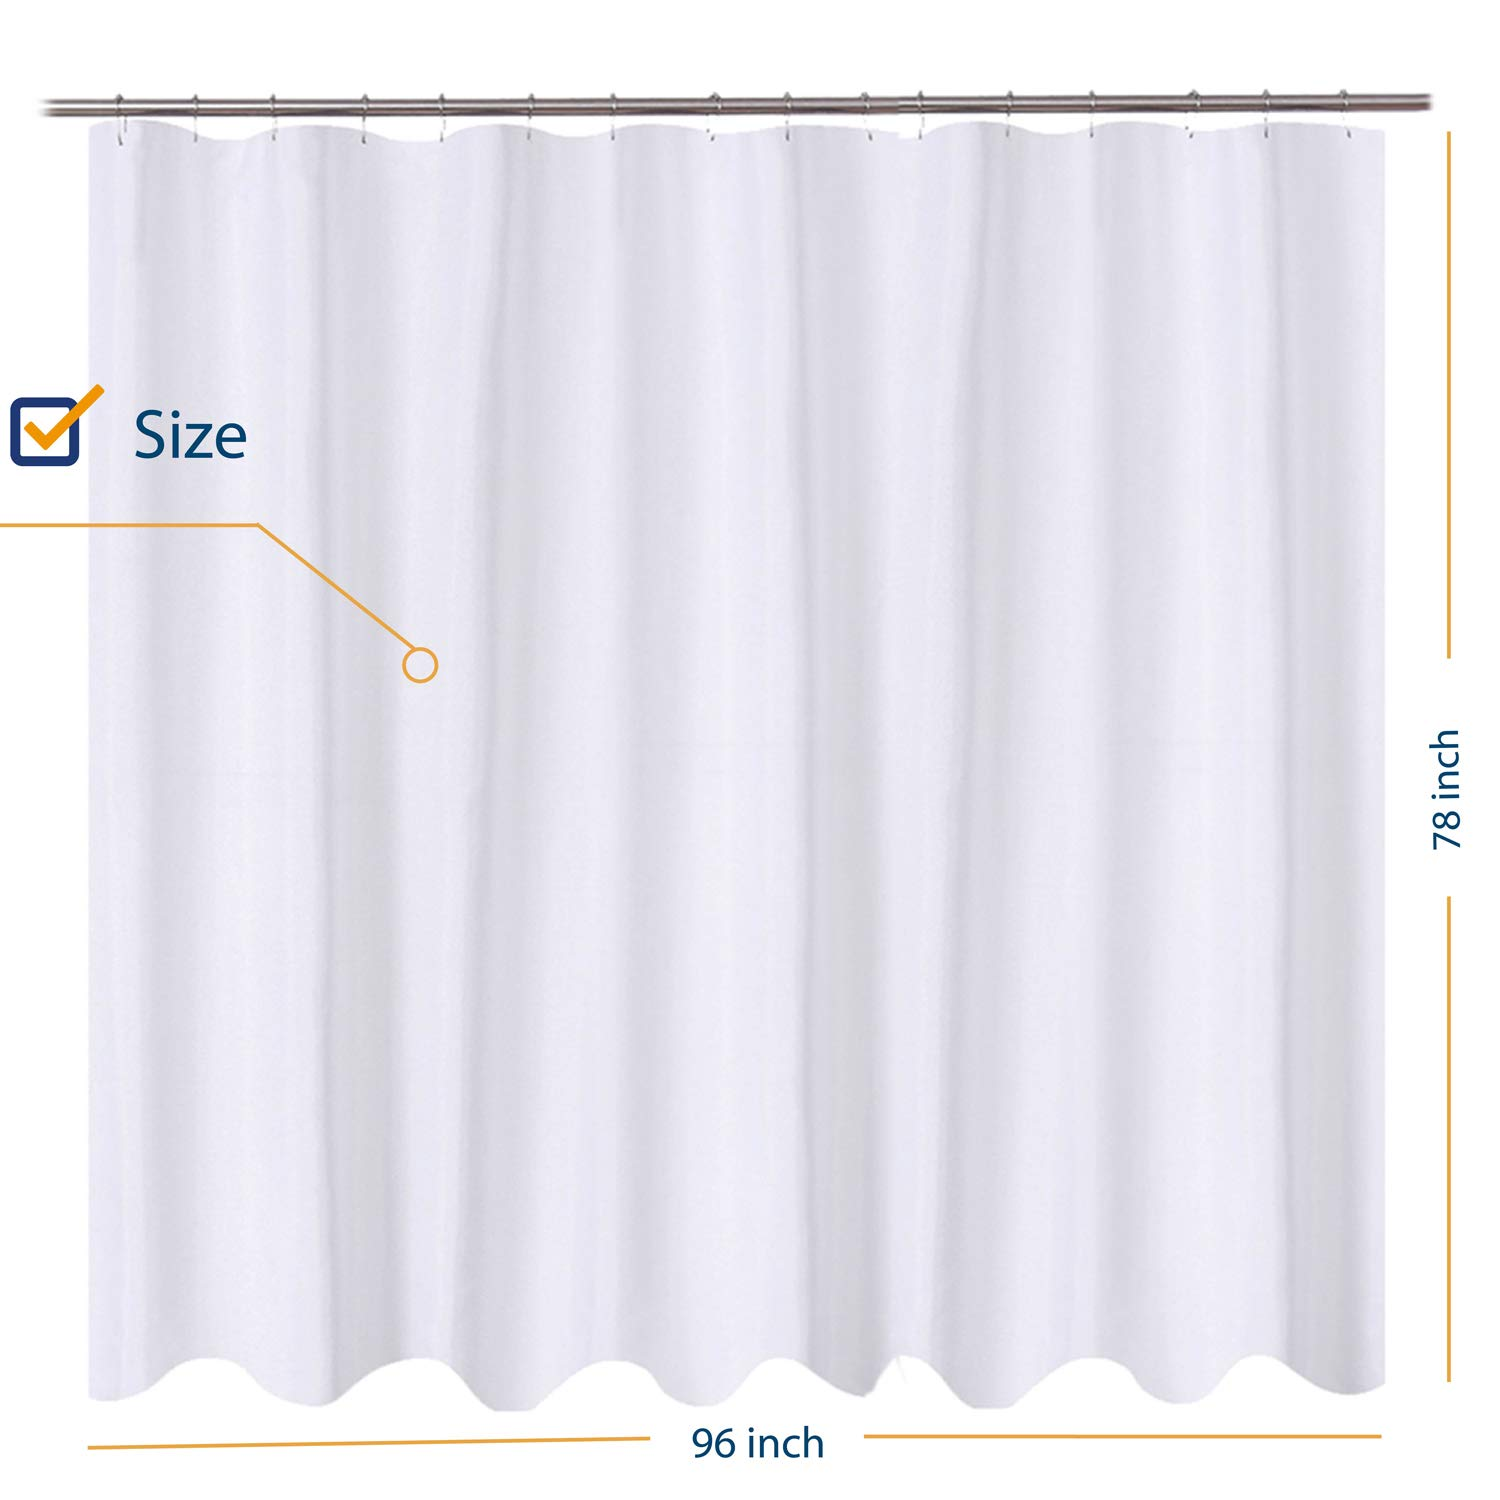 NY HOME Fabric Shower Curtain Liner Oversize 96 X 72 Inch Hotel Quality Mildew Resistant Washable Water Repellent White Bathroom Curtains With